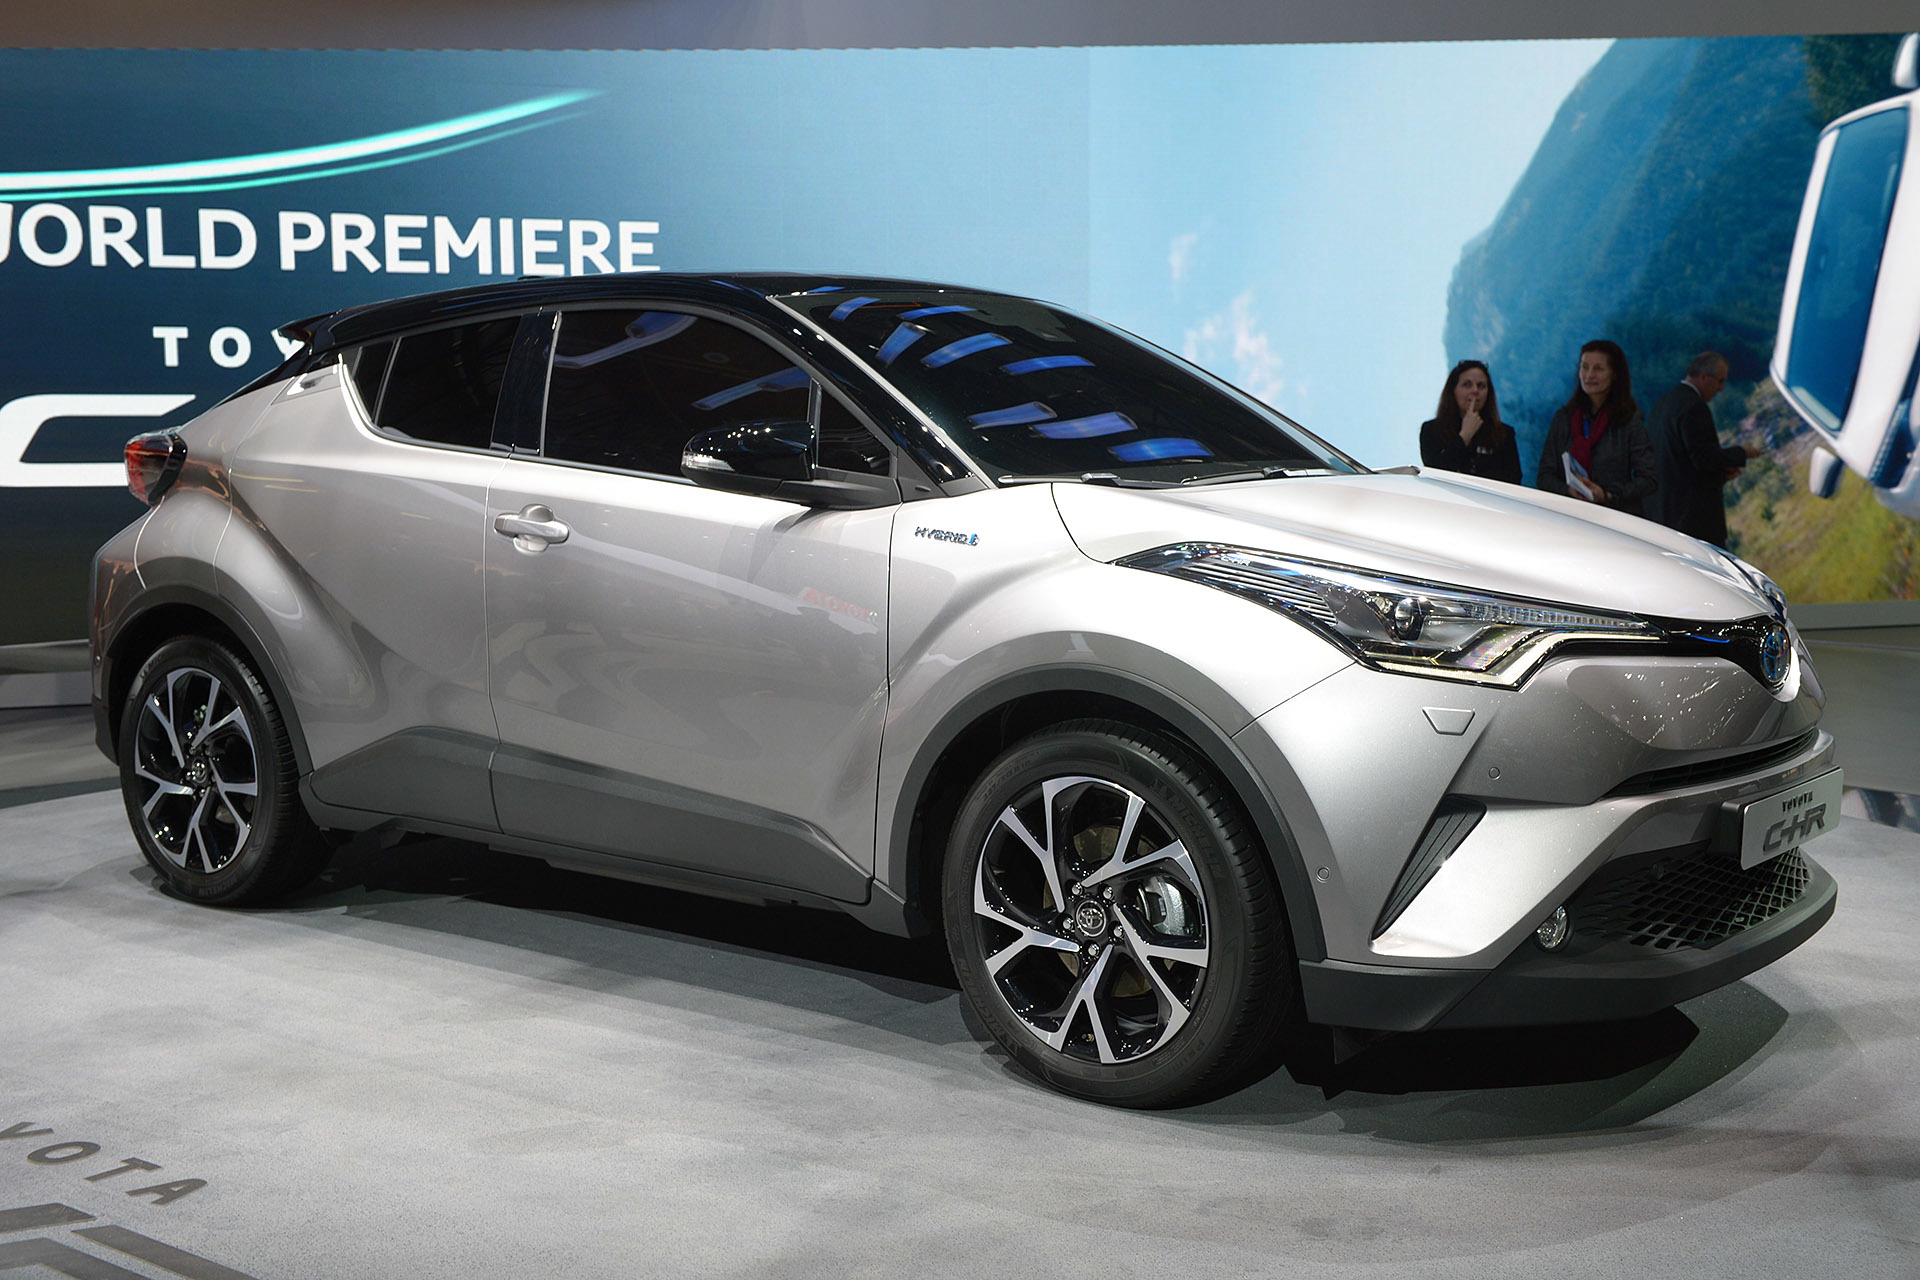 Toyota's Vezel Fighter 'C-HR' Will Be Available With A 1.2L Turbocharged Engine - PakWheels Blog